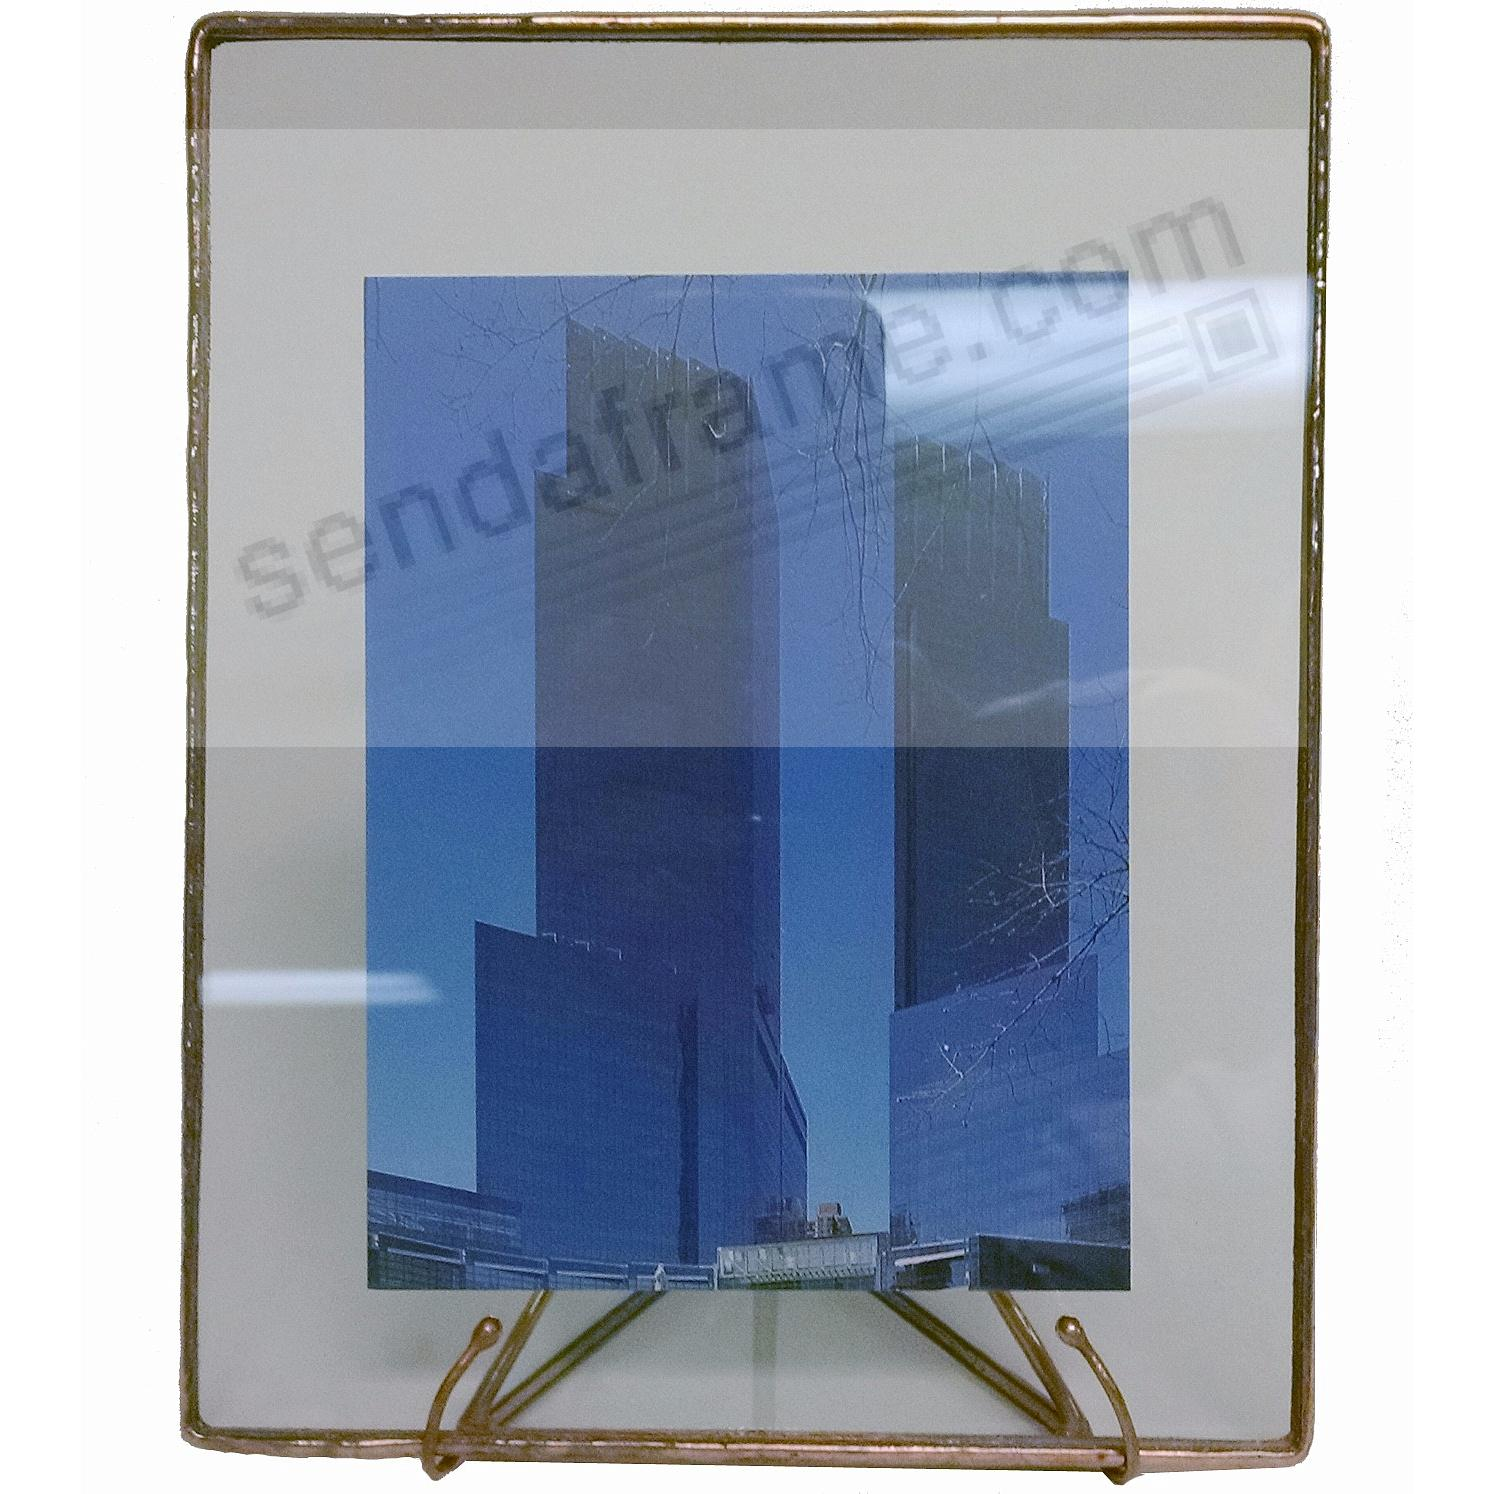 Picture frames photo albums personalized and engraved digital copper clear glass float frame 5frac12x74x6 by bedford downingreg jeuxipadfo Image collections